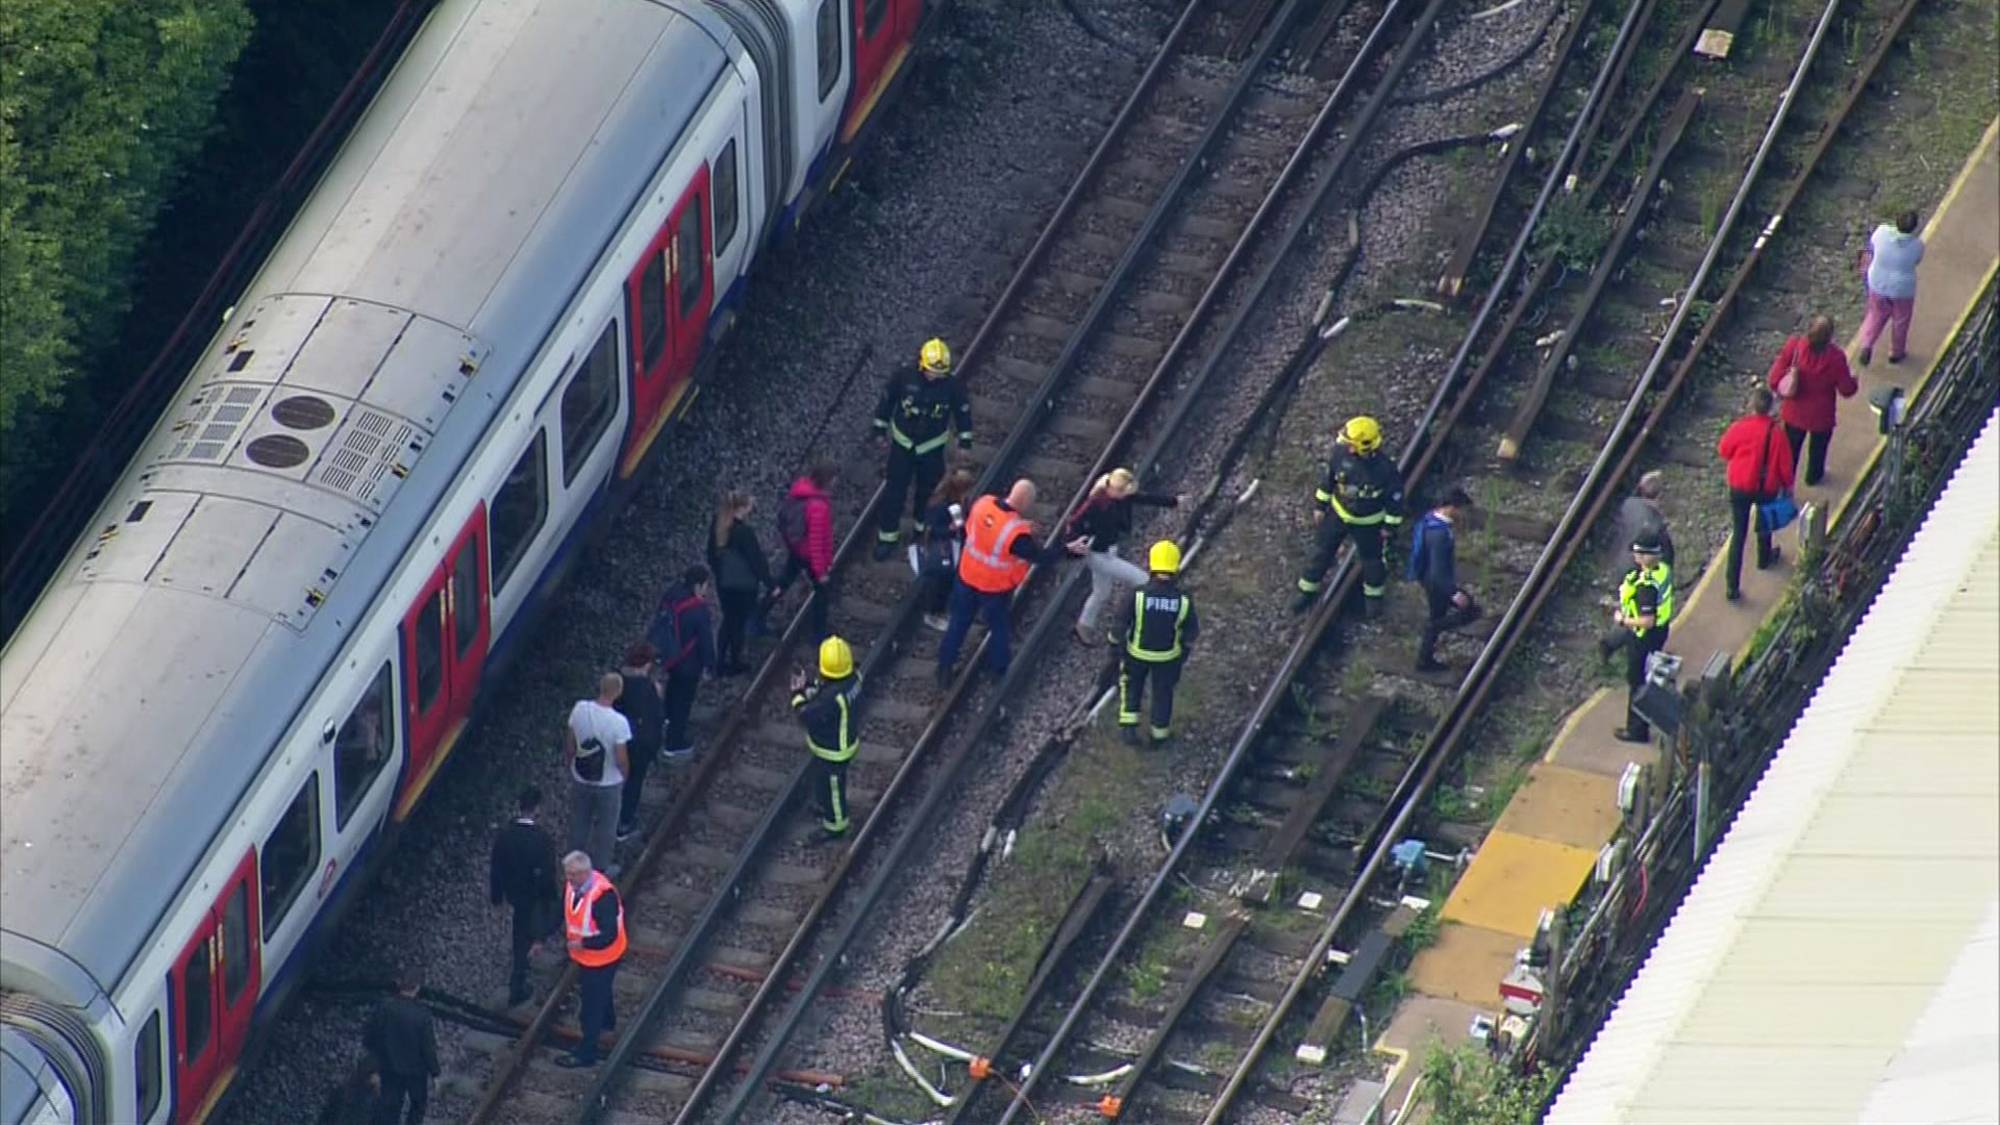 In this aerial image made from video, emergency workers help people to disembark a train near the Parsons Green Underground Station after an explosion in London Friday, Sept. 15, 2017. A reported explosion at a train station sent commuters stampeding in panic, injuring several people at the height of London's morning rush hour, and police said they were investigating it as a terrorist attack. (Pool via AP)